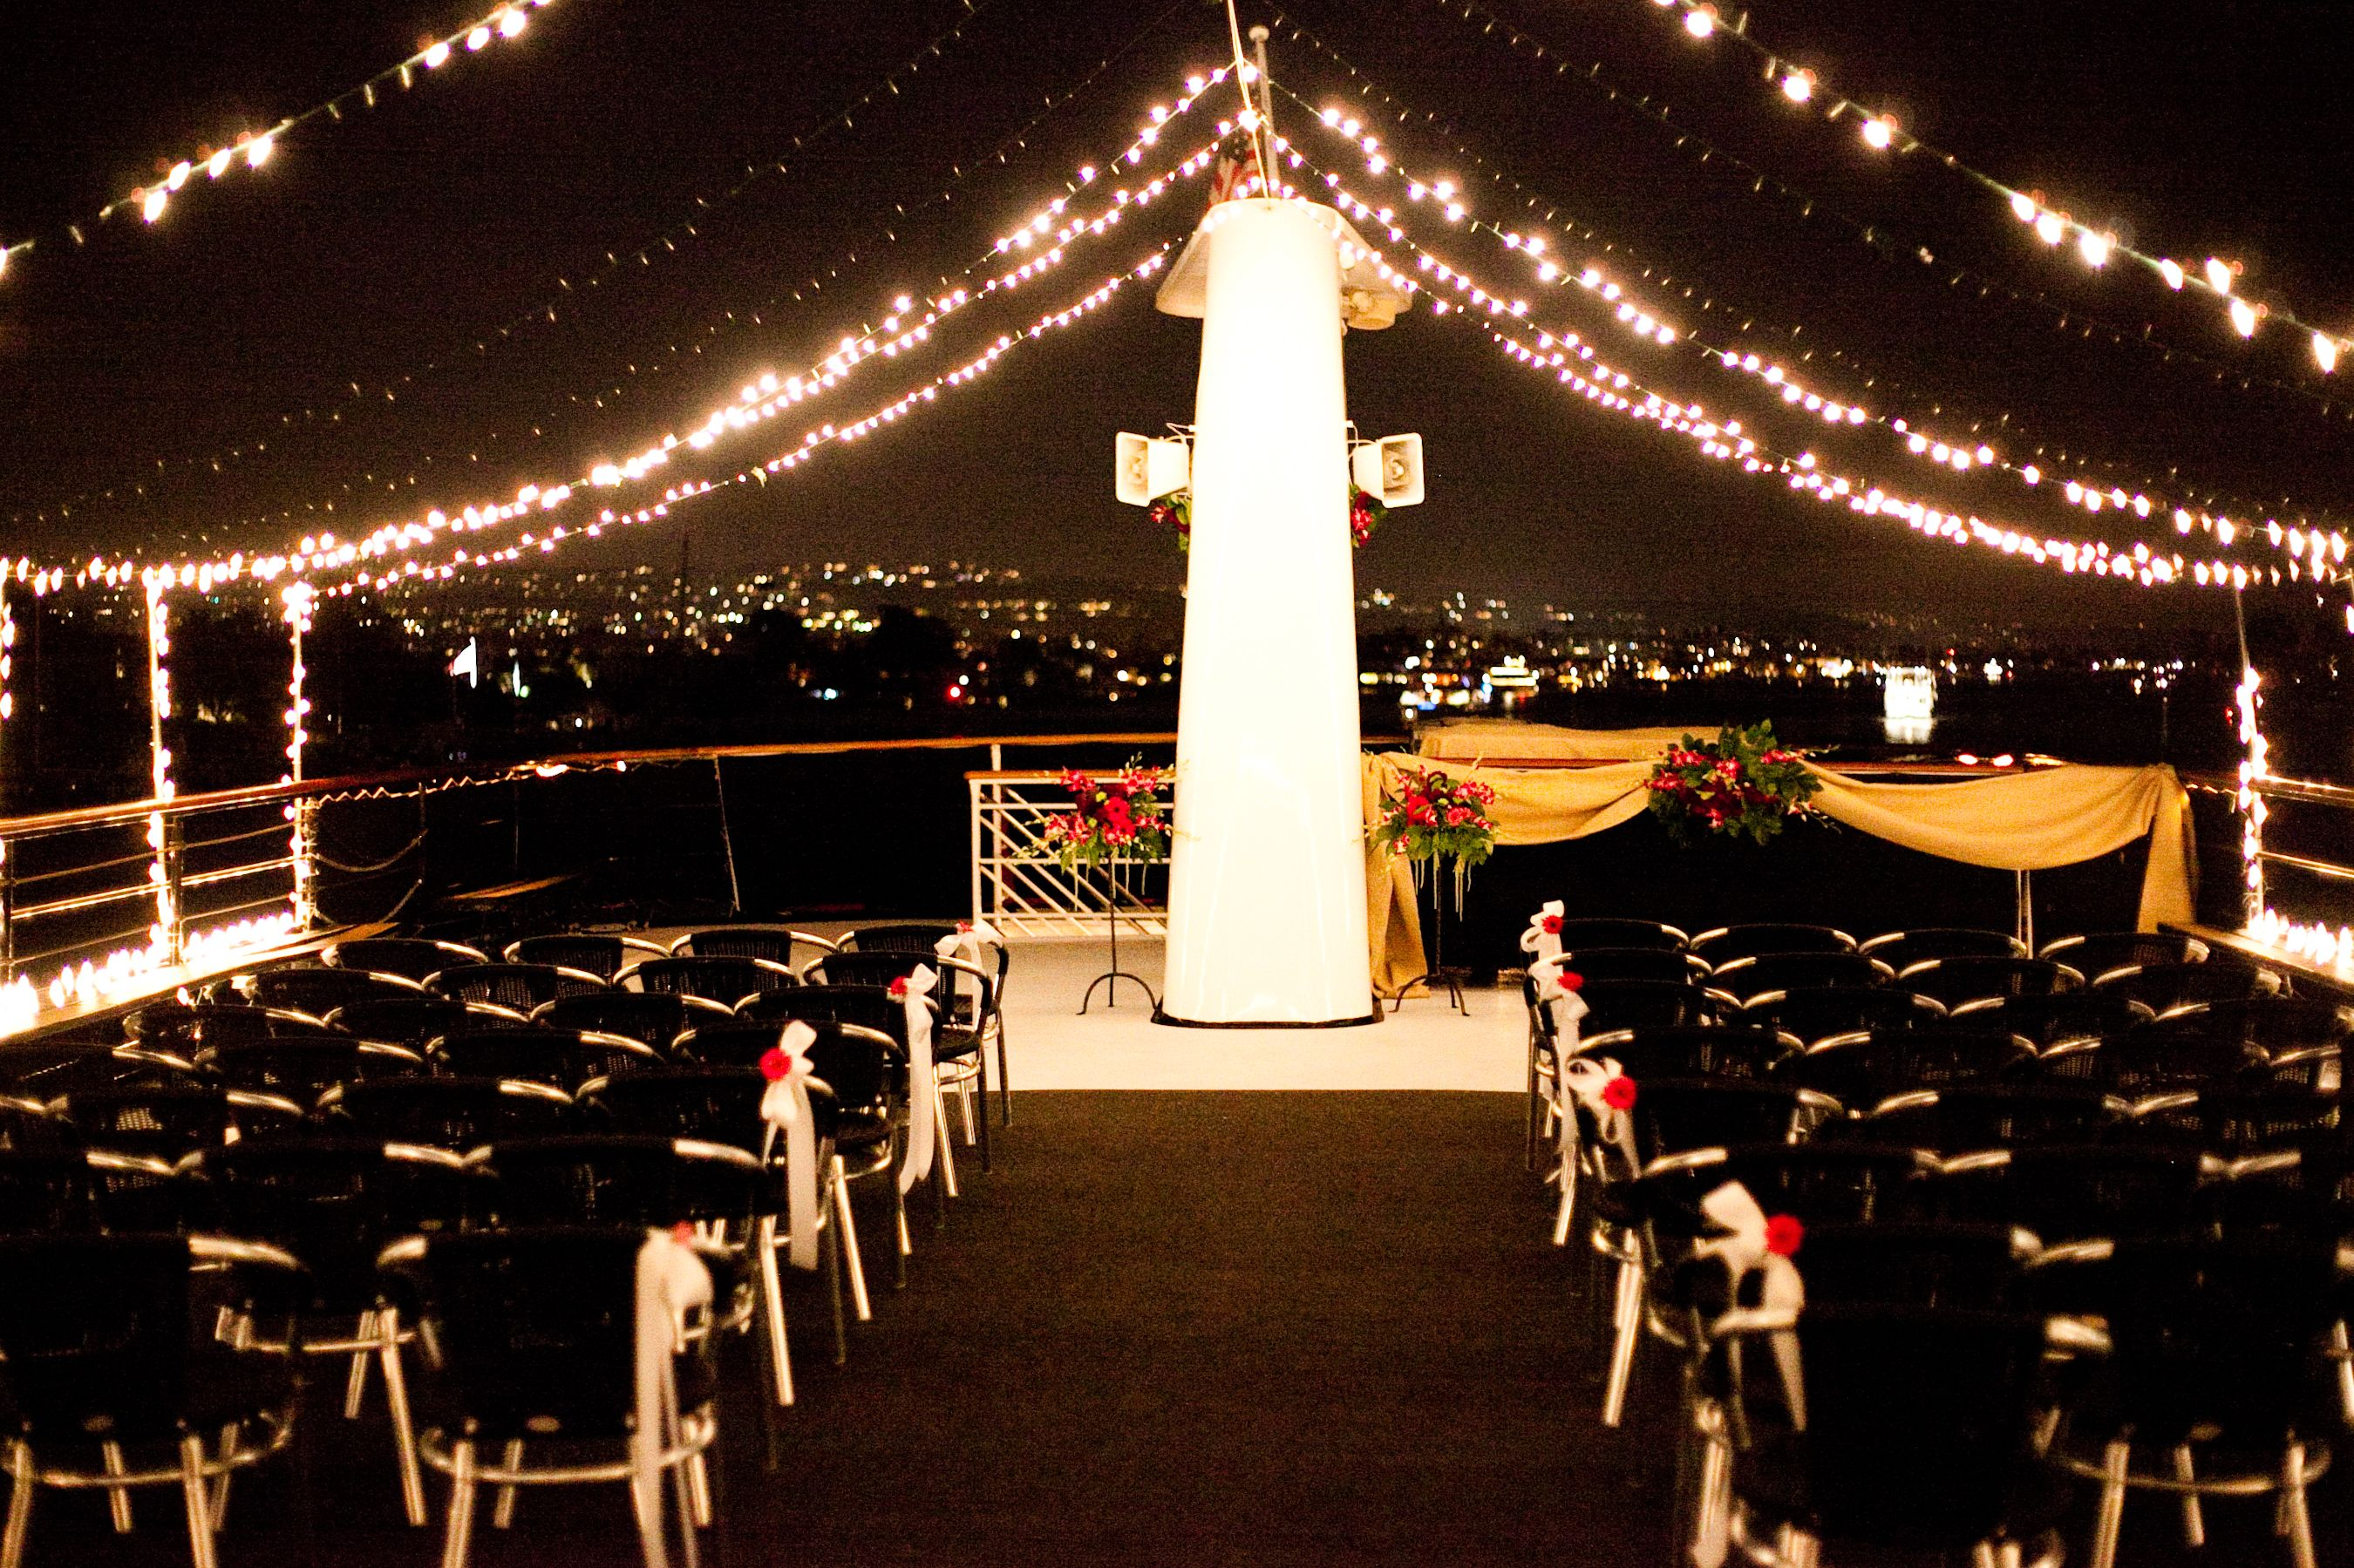 Find Top Nyc Wedding Venues At The Plaza Hotel New York NY LLe Parker Meridien Midtown Loft And Terrace Hornblower Cruises Events